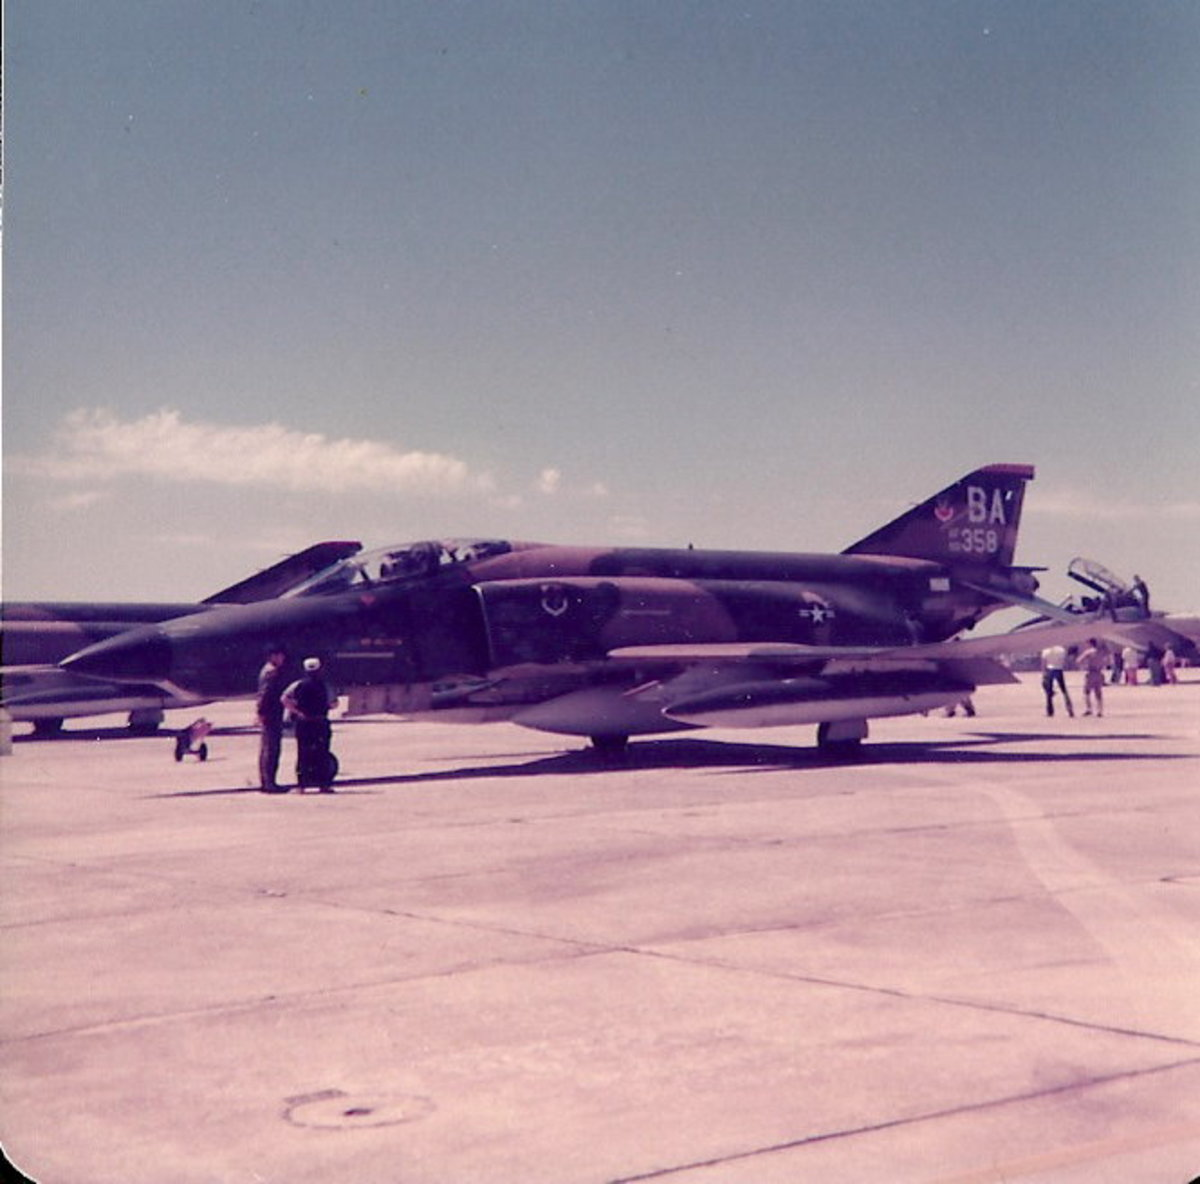 A USAFF-4 Phantom II with camouflaged paint scheme and subdued USAF roundel.